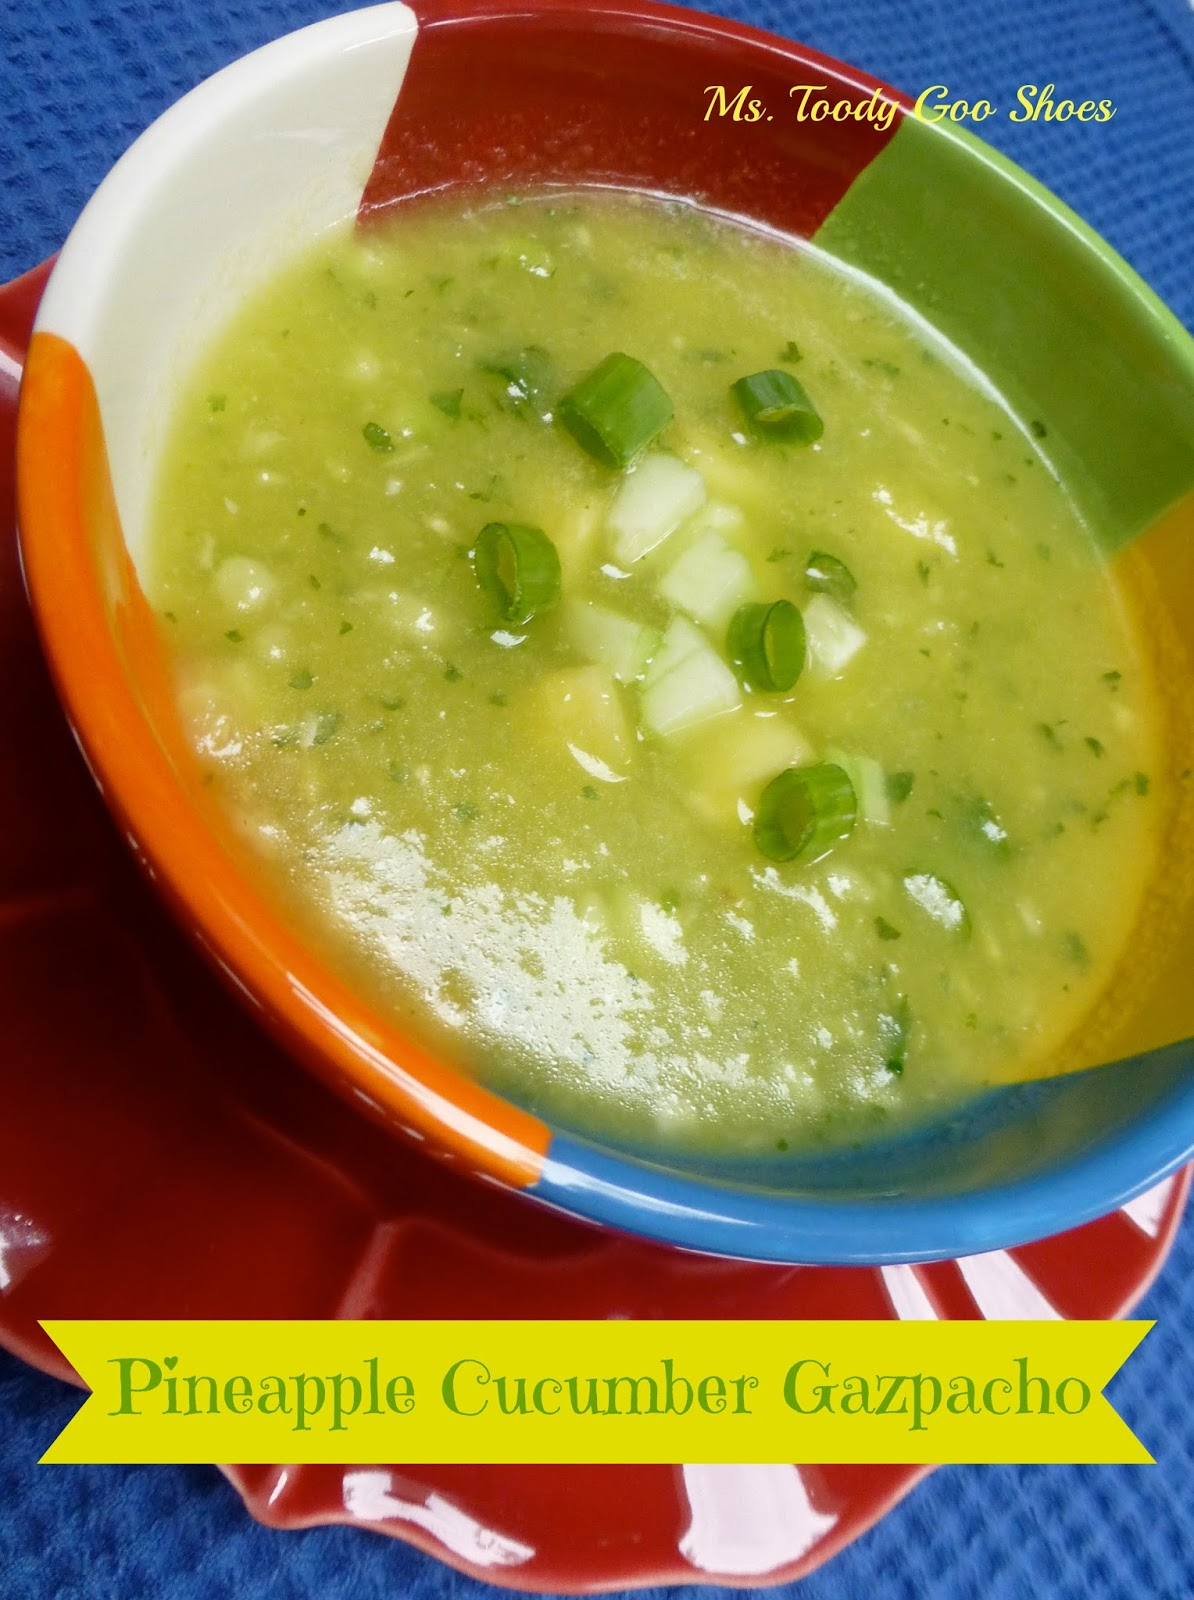 Pineapple Gazpacho | Ms. Toody Goo Shoes